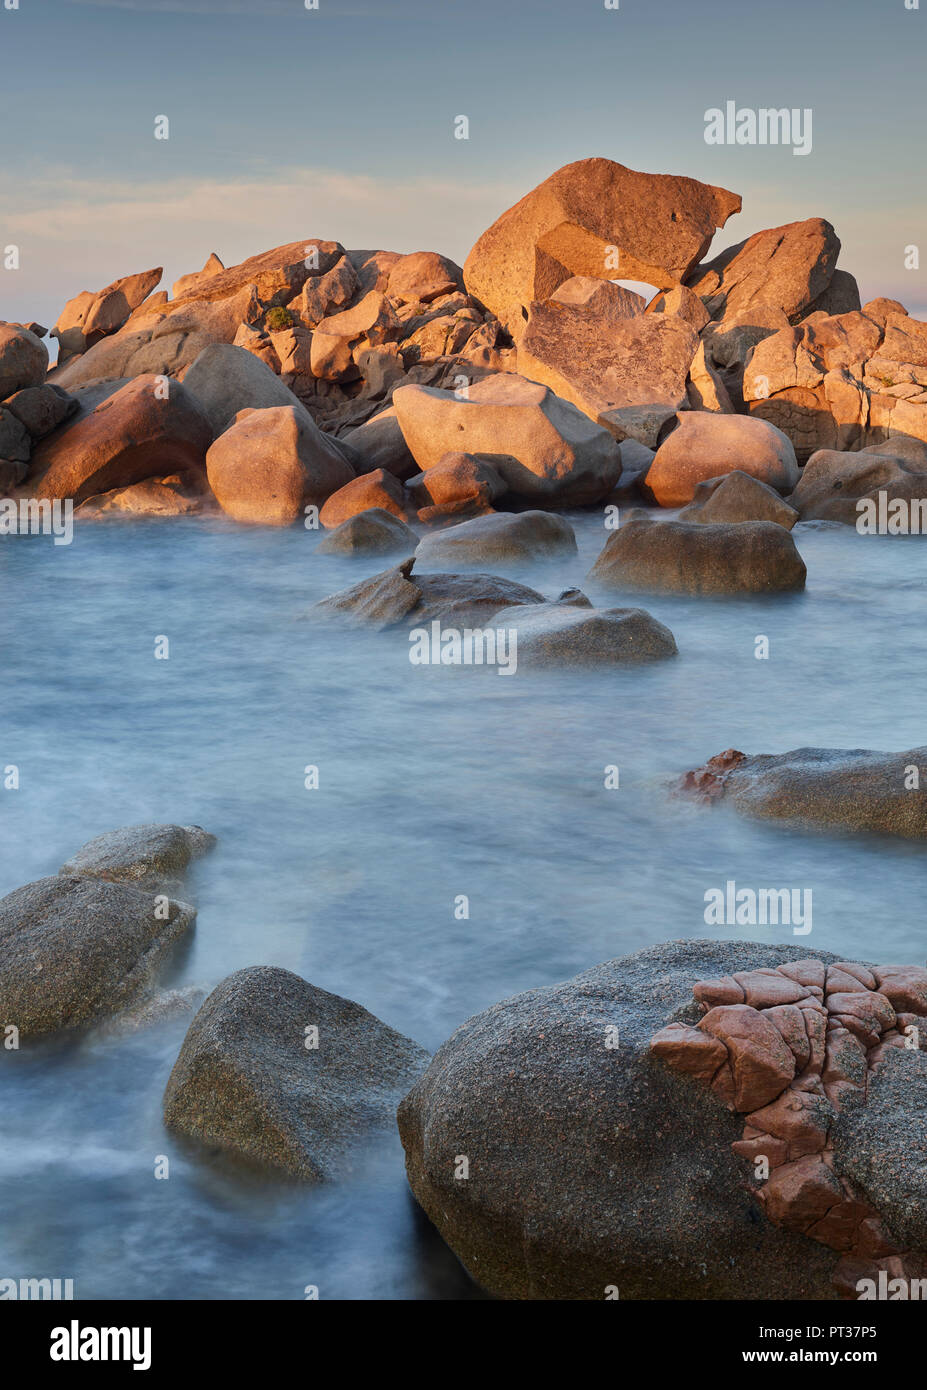 Rocks at the Plage Palombaggia, Corsica, France - Stock Image